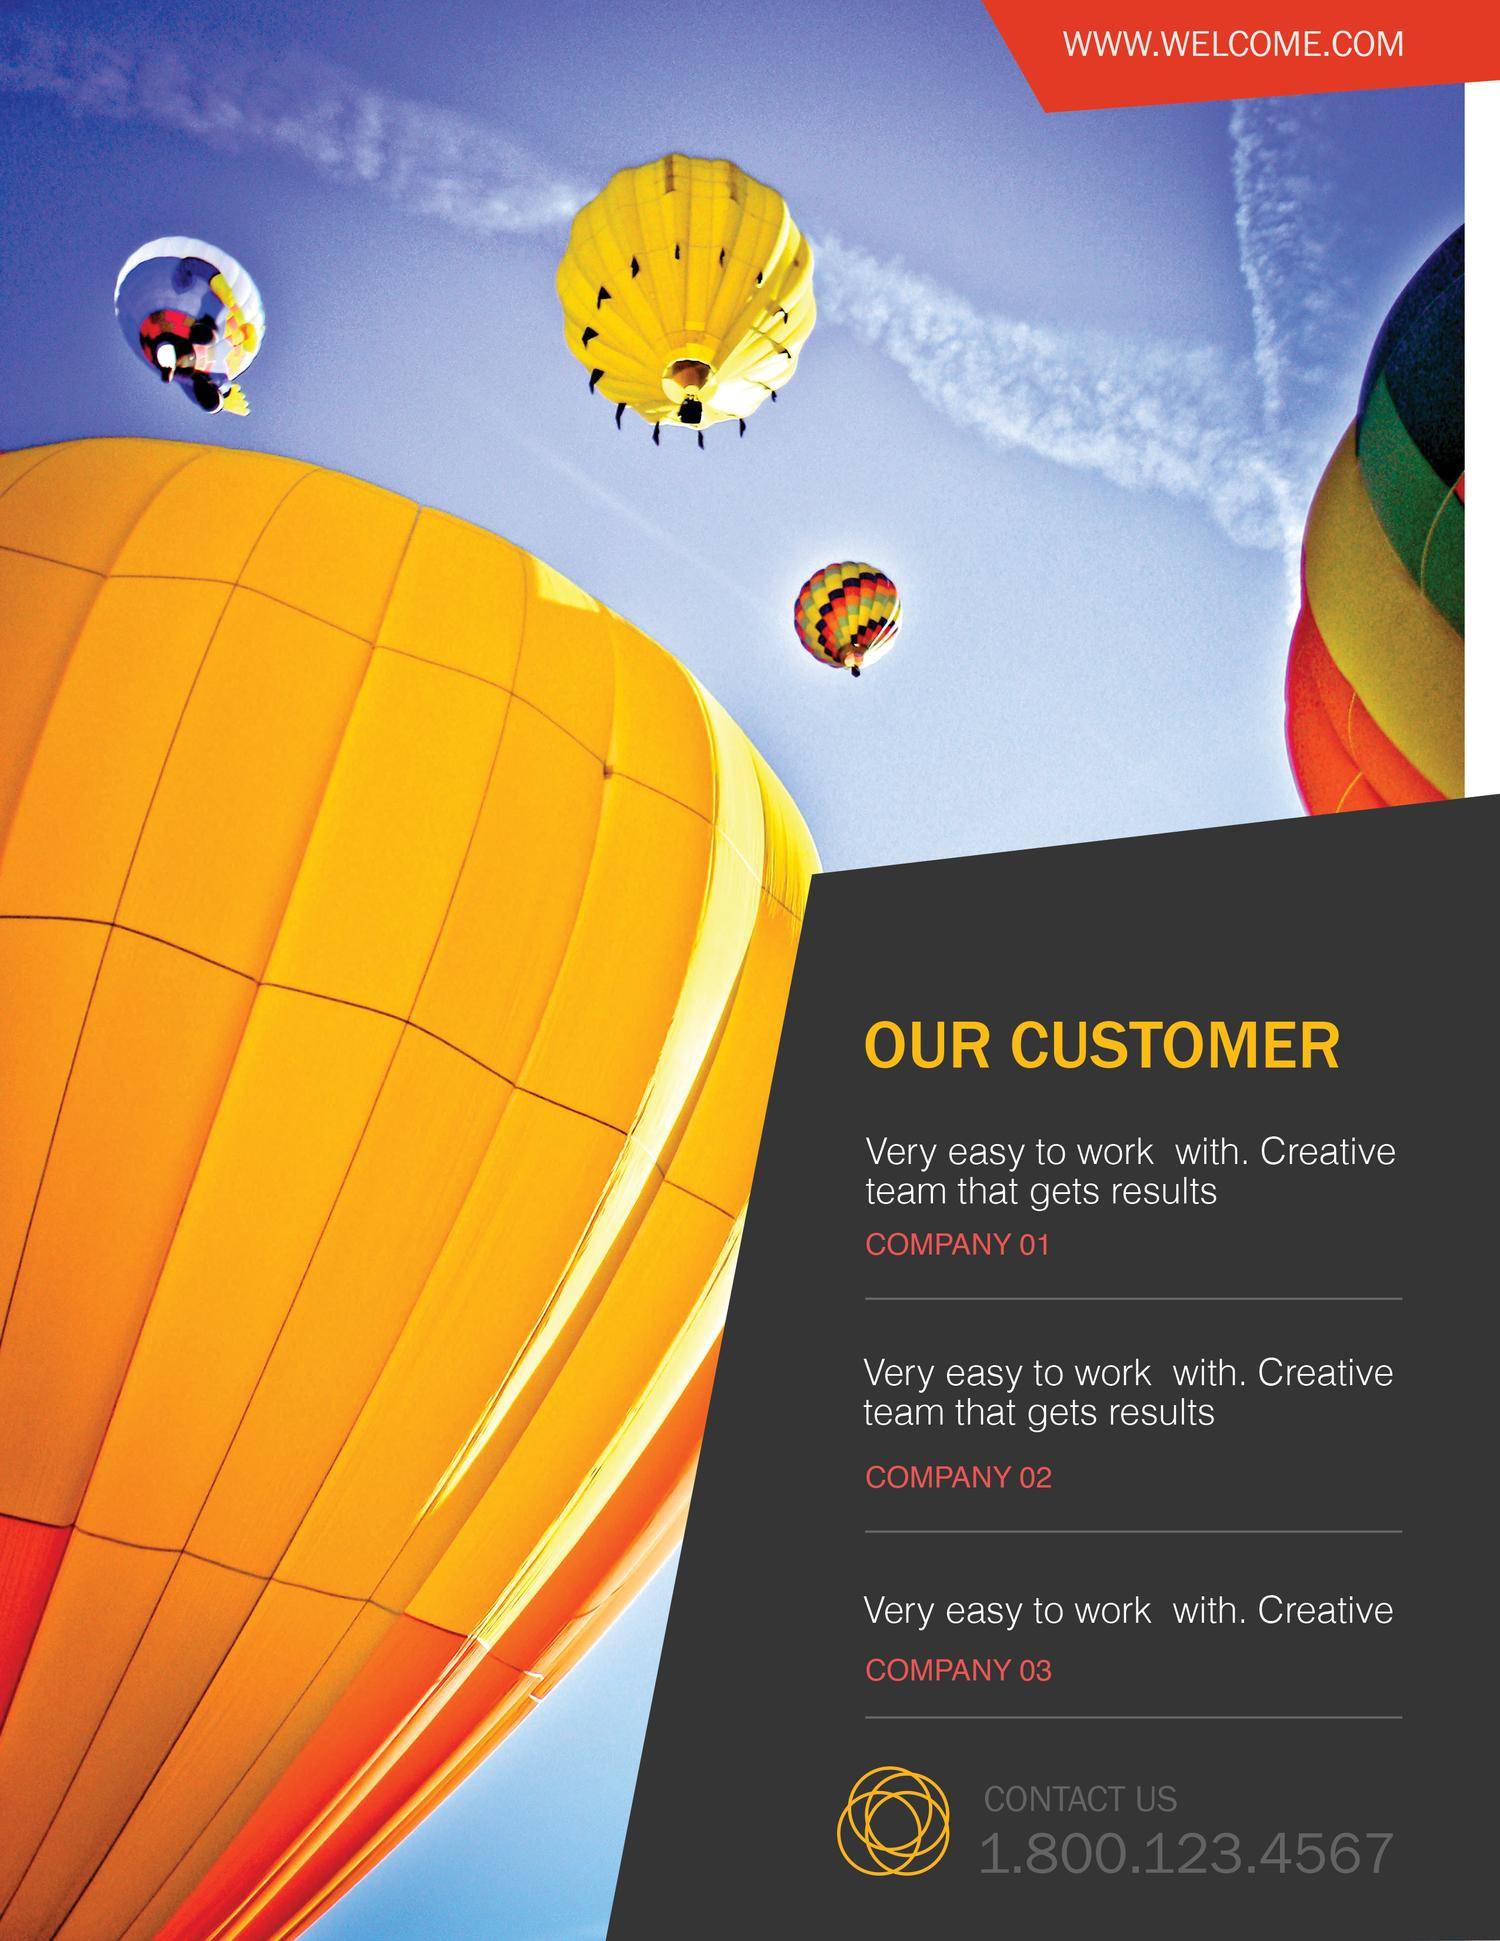 Corporate Flyer Design by DesignDistrict - 3453